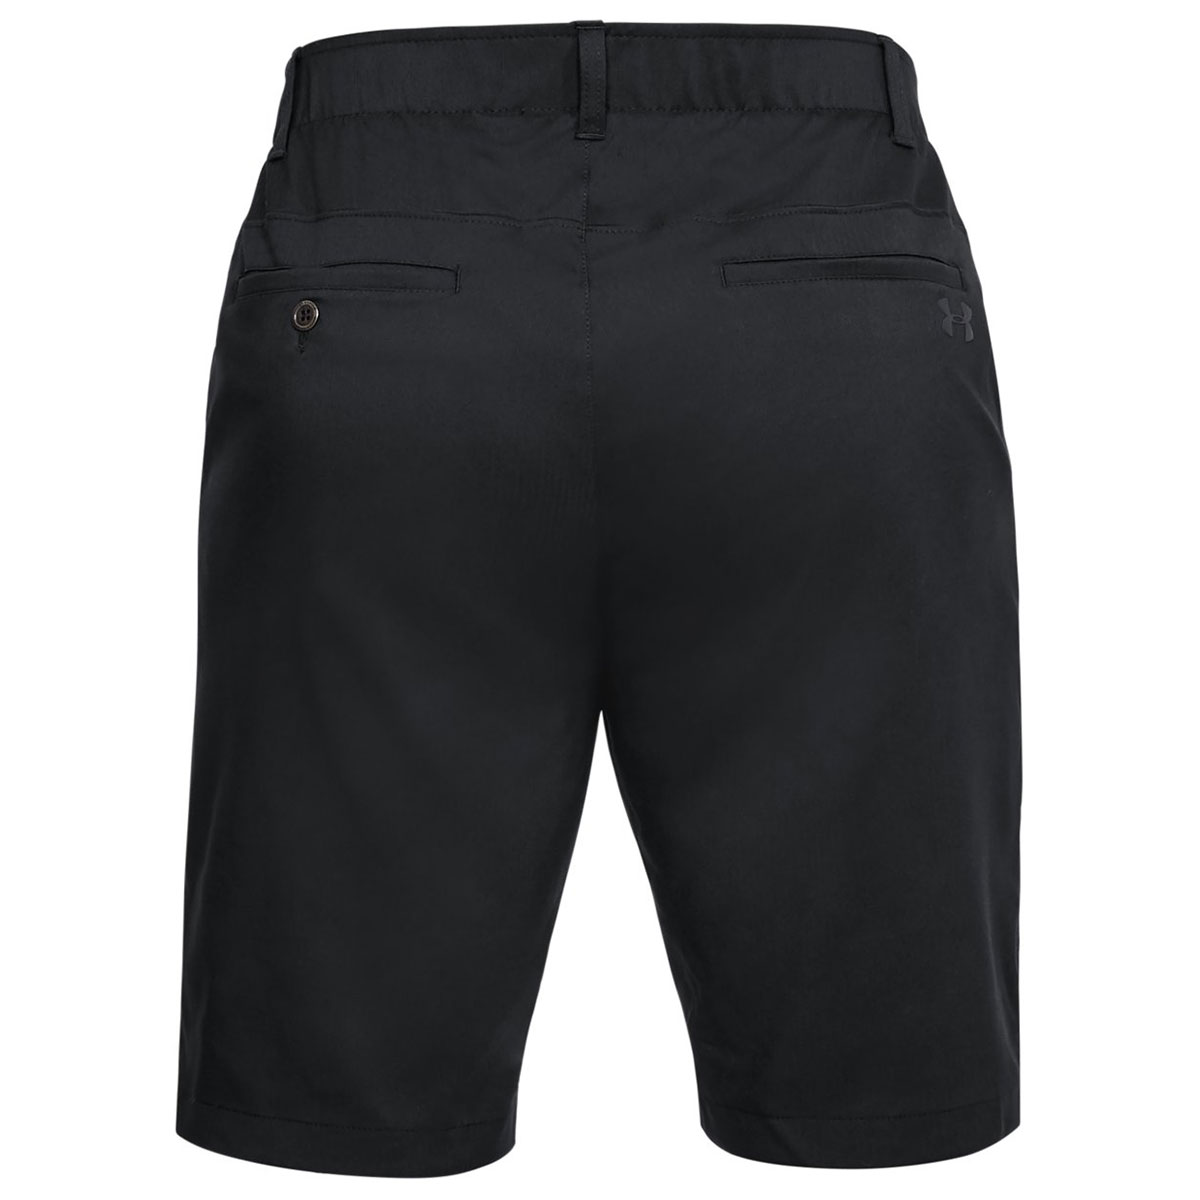 Under-Armour-Mens-Takeover-Taper-Mid-Length-Golf-Shorts-42-OFF-RRP thumbnail 8